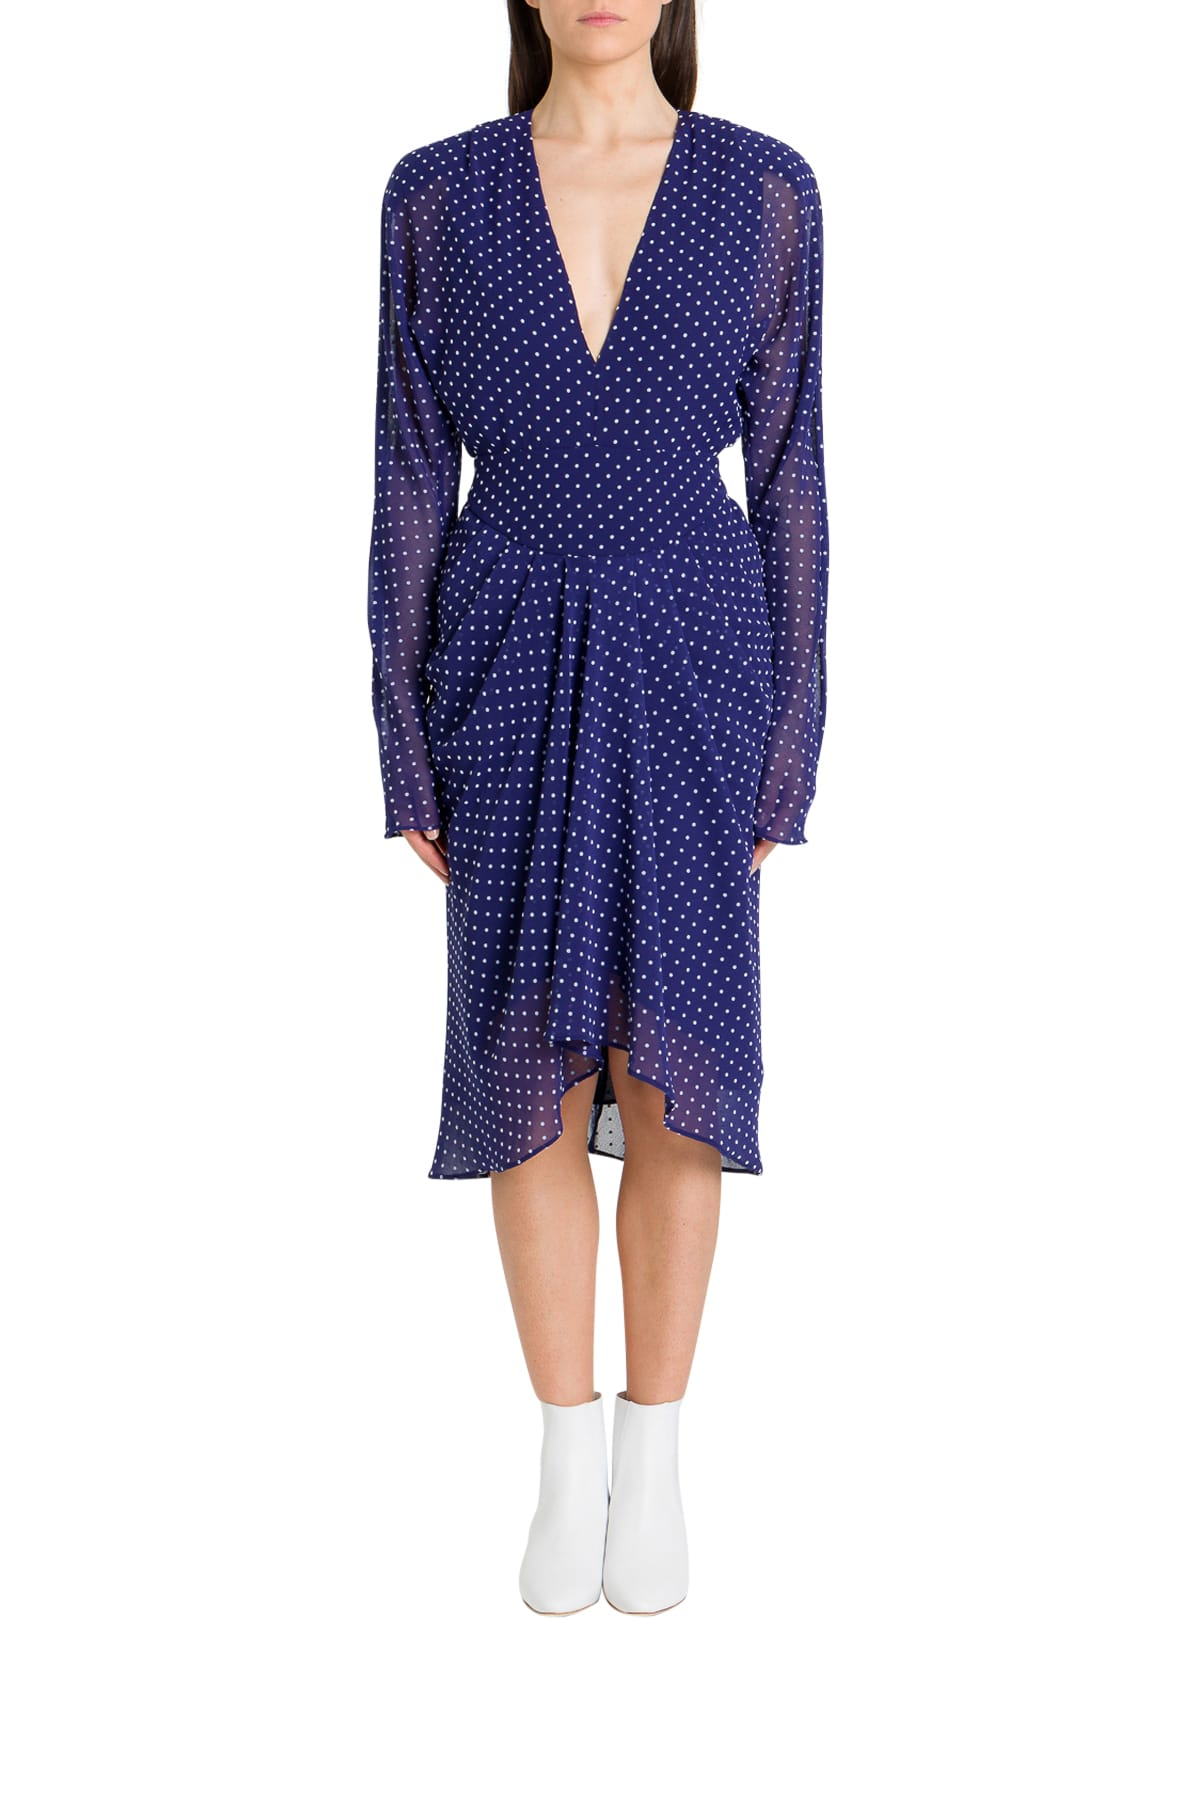 Buy Philosophy di Lorenzo Serafini Short Dress With Flounces And Ballon Minidress online, shop Philosophy di Lorenzo Serafini with free shipping